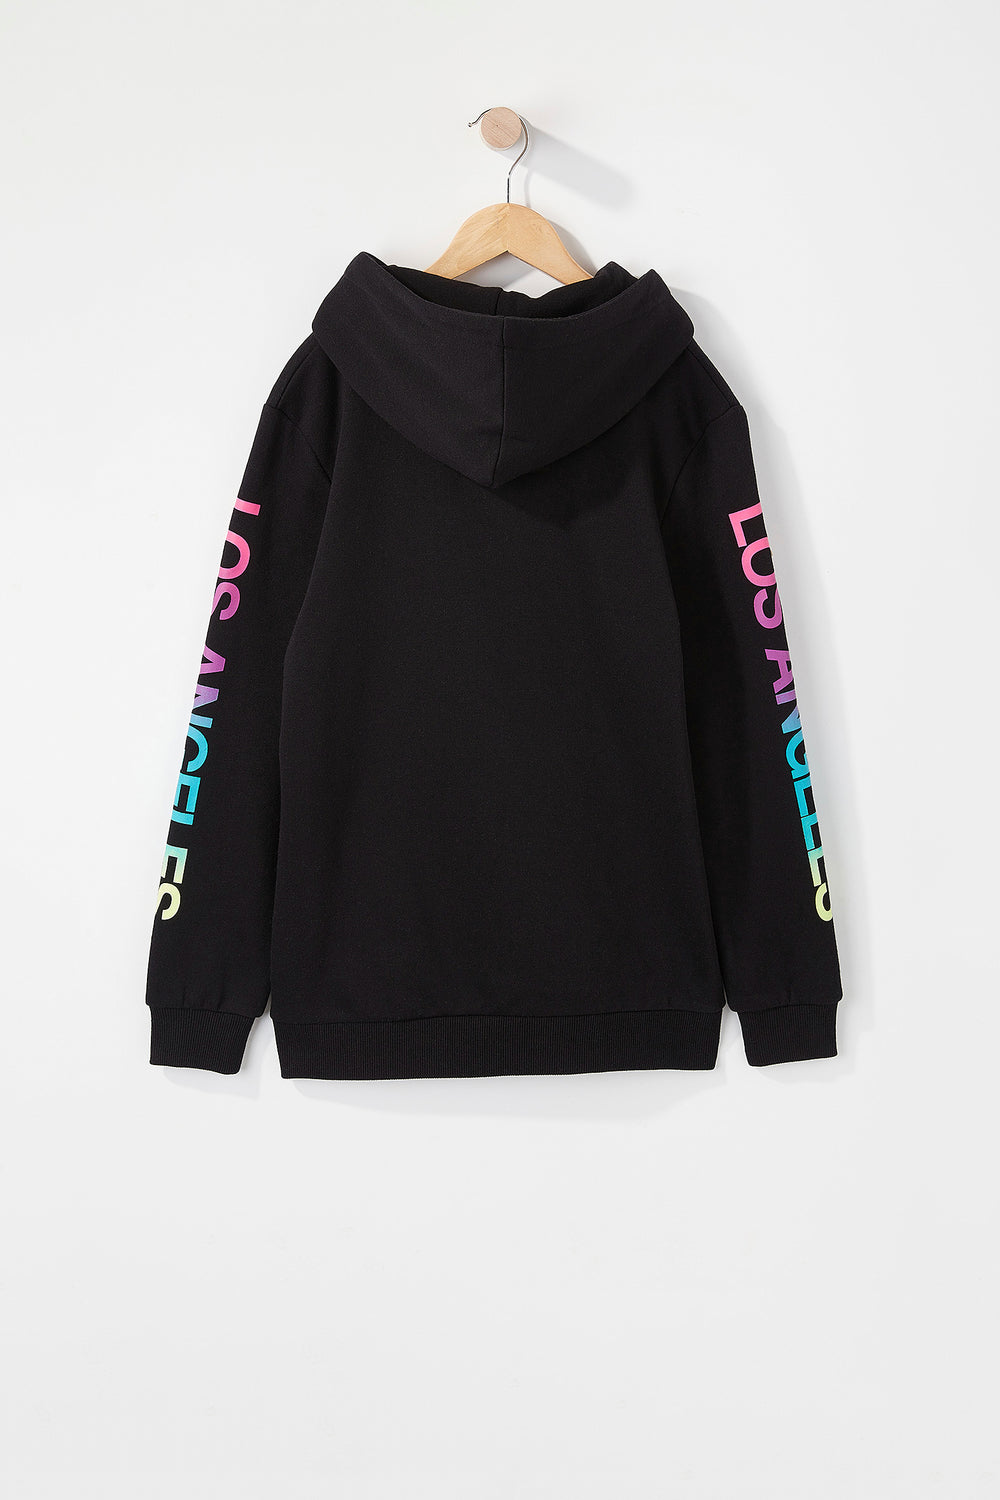 Young & Reckless Boys Gradient Logo Hoodie Black